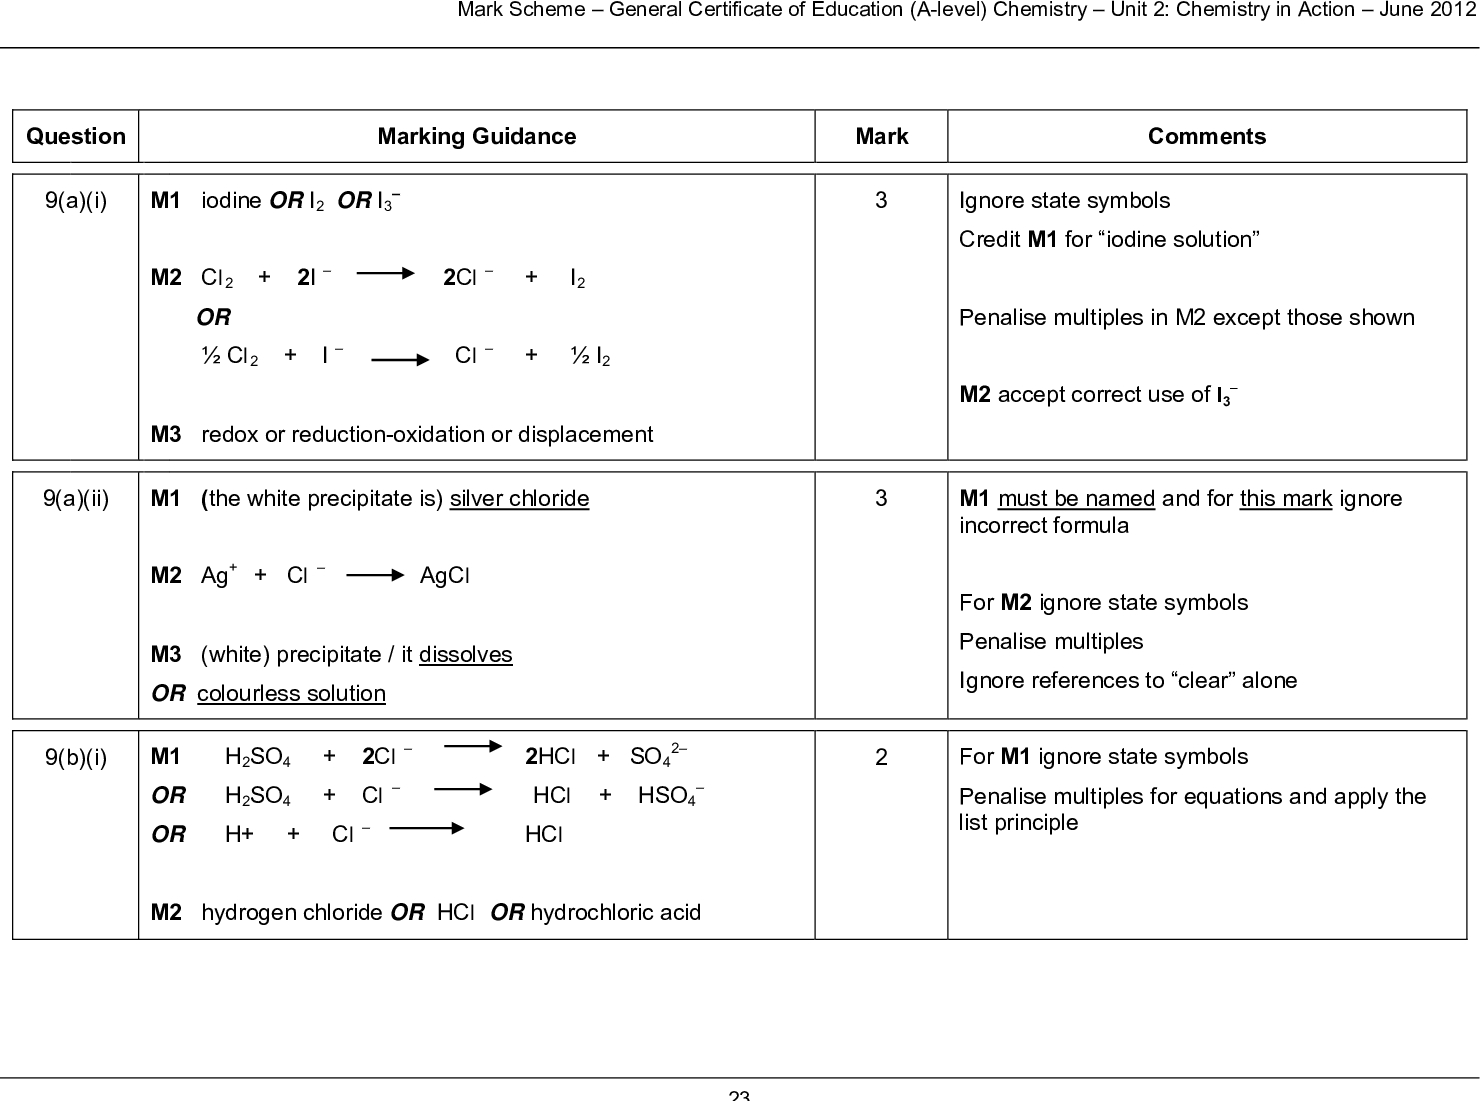 mark scheme general certificate of education a level chemistry unit chemistry in action june question marking guidance mark comments a i m iodine or i or i m cl i cl i or cl i cl i m redox or reduction oxidation or displacement a ii m the white precipitate is silver chloride m ag cl agcl m white precipitate it dissolves or colourless solution or h so cl hcl hso or m hydrogen chloride or hcl or hydrochloric acid h cl hcl b i m h so cl hcl so ignore state symbols credit m for iodine solution penalise multiples in m except those shown m accept correct use of i m must be named and for this mark ignore incorrect formula for m ignore state symbols penalise multiples ignore references to clear alone for m ignore state symbols penalise multiples for equations and apply the list principle mark scheme general certificate of education a level chemistry unit chemistry in action june b ii m and m in either order or m i i e i i e m h so h e h s h o or so m or electron acceptor m sulfur or s or s or s or sulphur h e h s h o oxidising agent oxidises the iodide ions for m and m ignore state symbols and credit multiples do not penalise absence of charge on the electron credit electrons shown correctly on the other side of each equation additional equations should not contradict mark scheme general certificate of education a level chemistry unit chemistry in action june ignore reference to naoh reacting with bromide ions ignore reference to naoh reacting with hbro alone in m answers must refer to the position of equilibrium shifts moves and is not enough to state simply that it the system the reaction shifts to oppose the change b iii m the naoh oh sodium hydroxide reacts with neutralises the h acid hbr lowering its concentration or a correct neutralisation equation for h or hbr with naoh or with hydroxide ion m requires a correct statement for m the position of equilibrium moves shifts from l to r to replace the h acid hbr that has been removed lost or to increase the h acid hbr conc